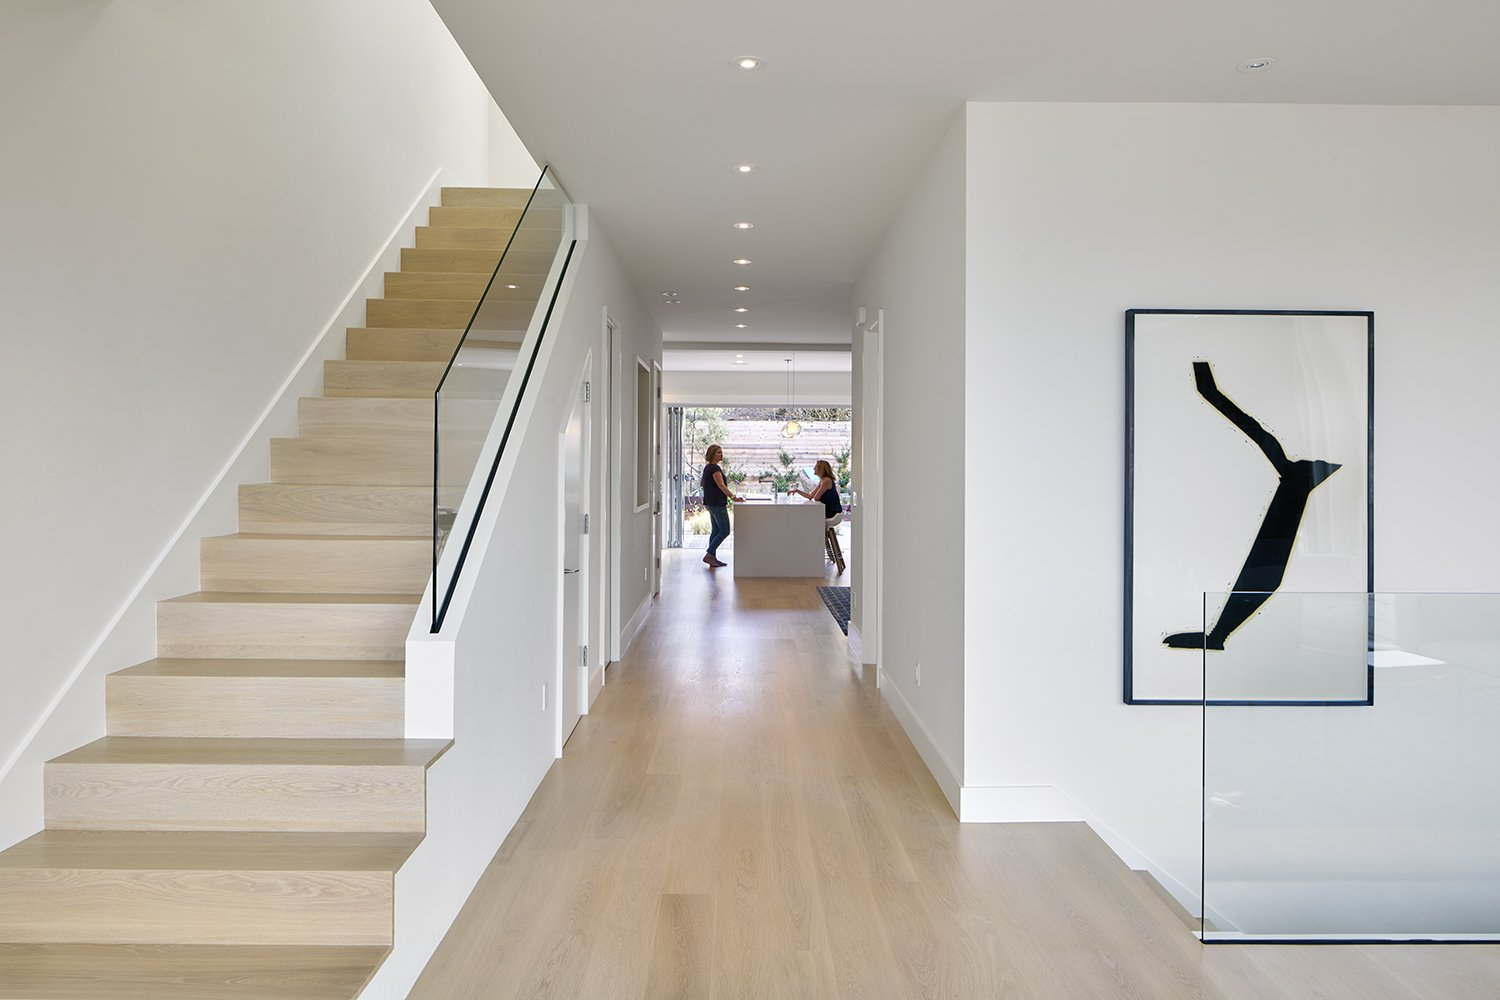 Tagged: Staircase and Wood Tread.  Randall Street by YAMAMAR Design